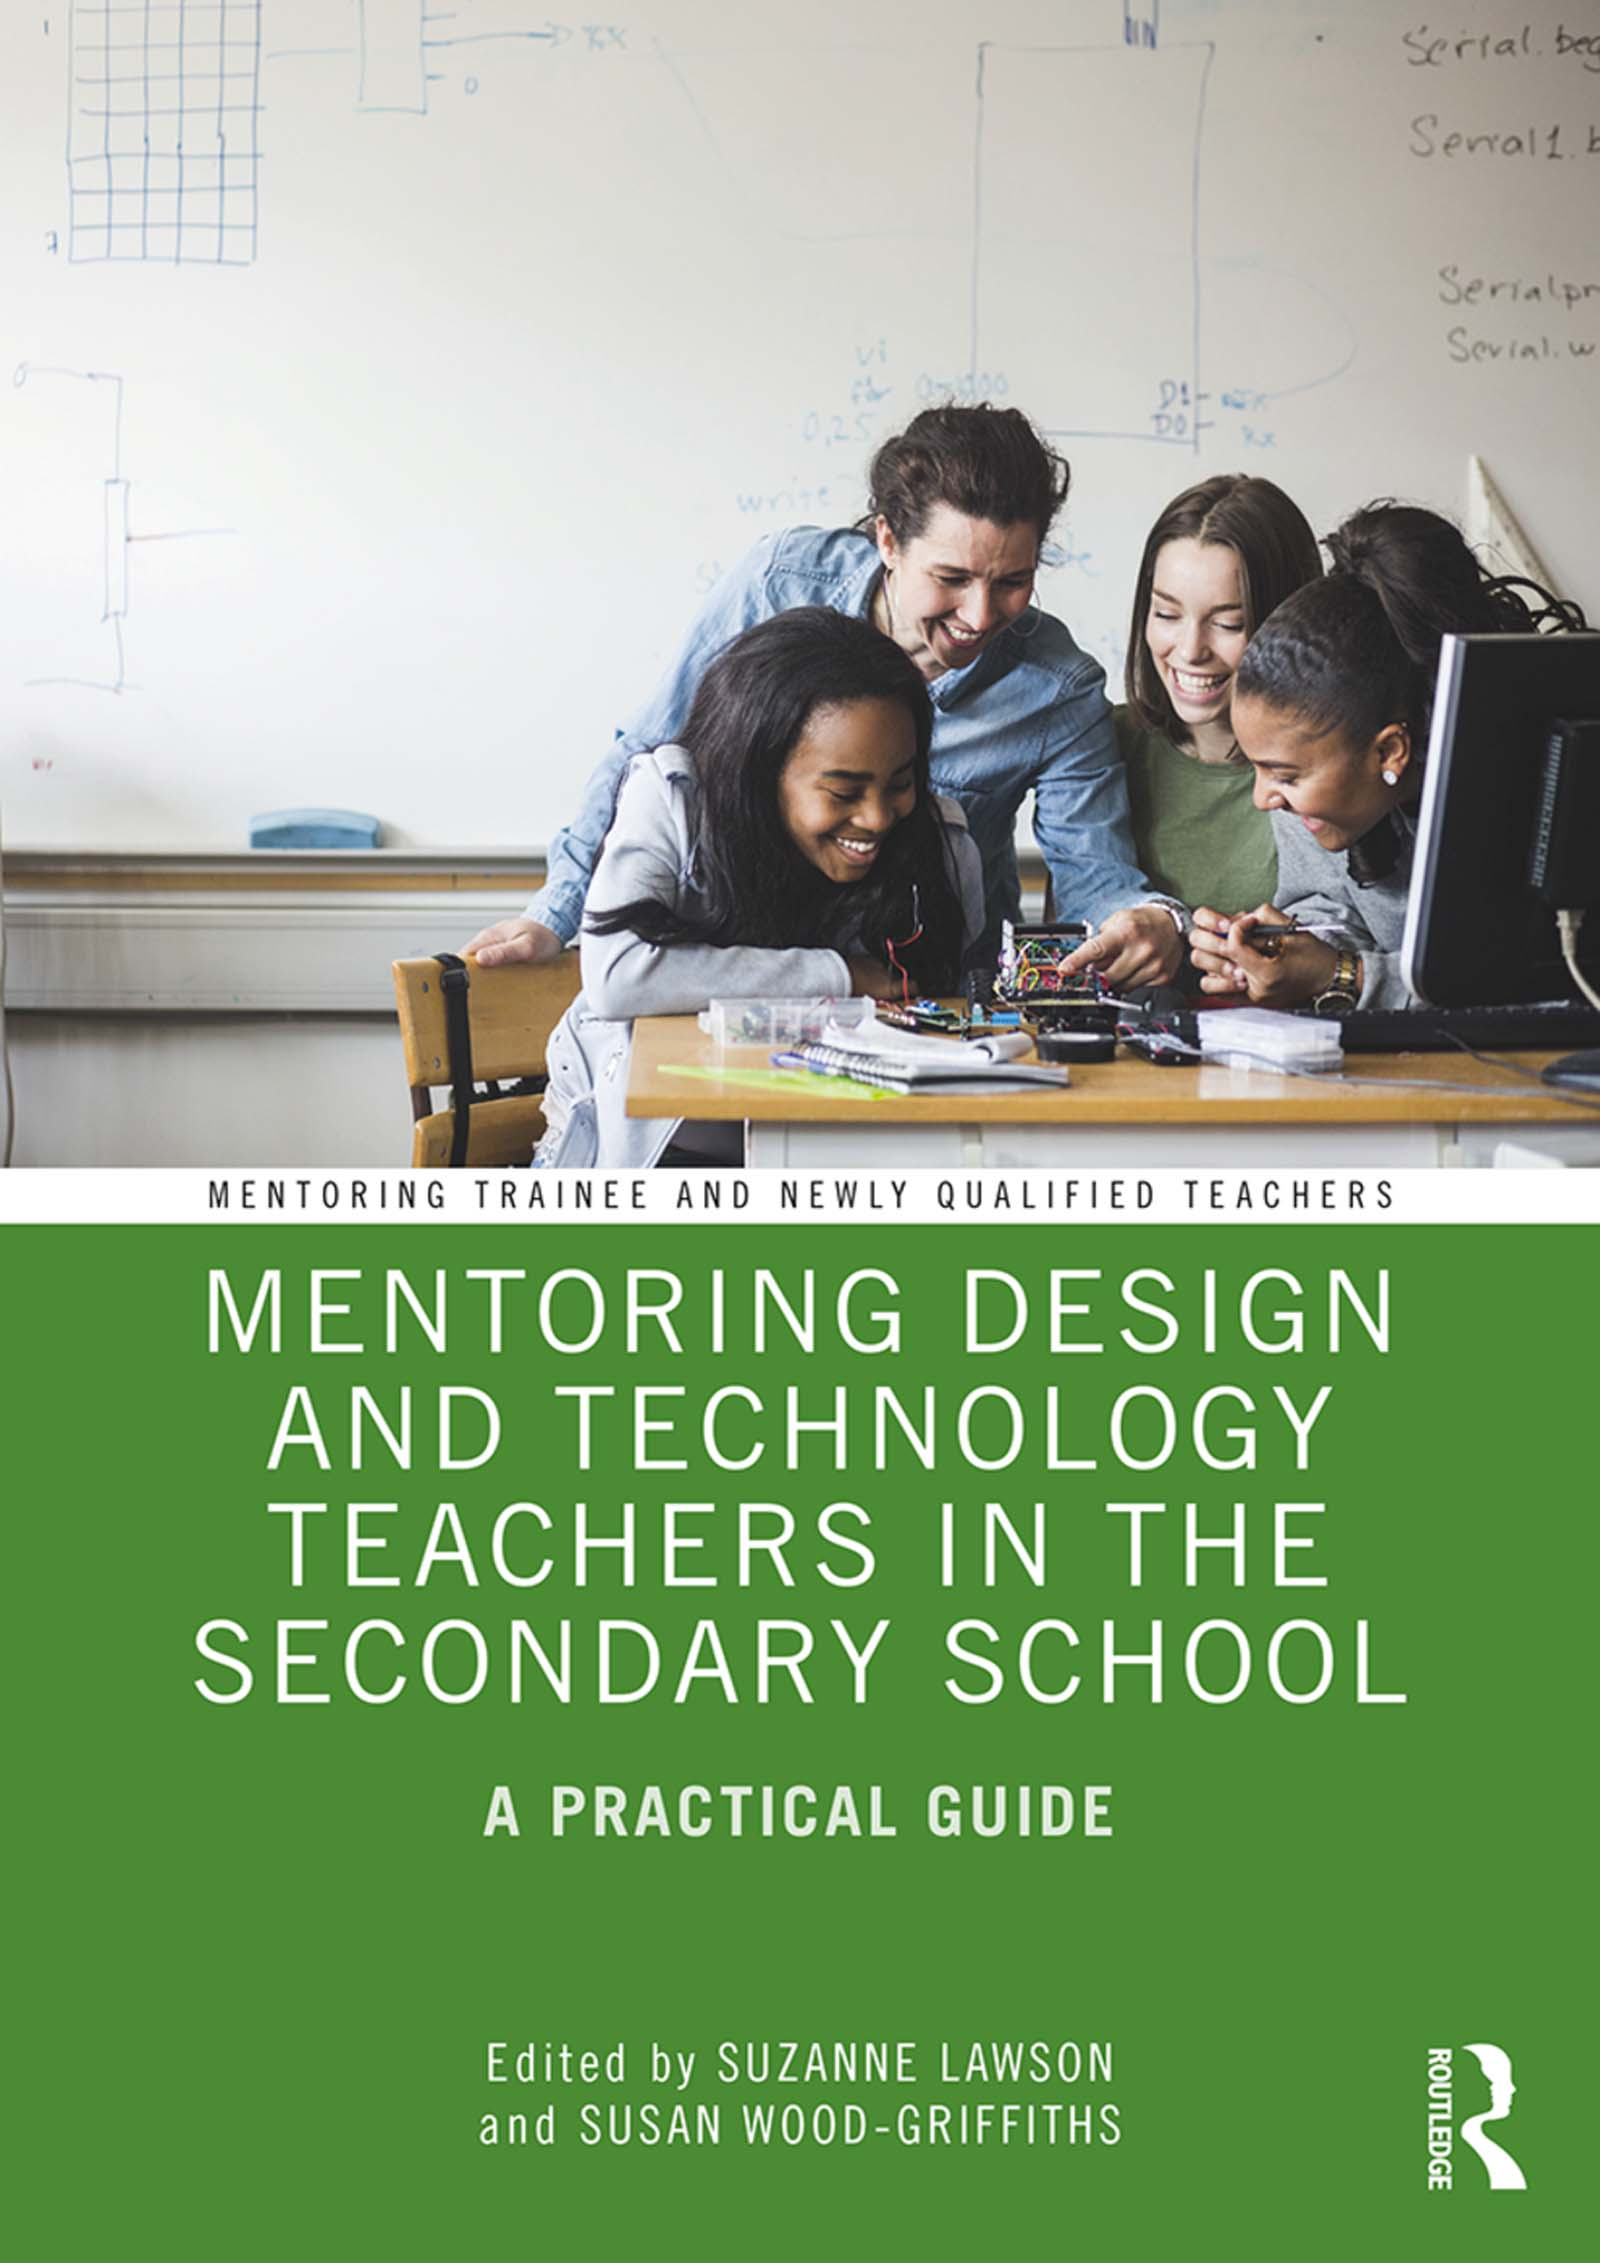 Mentoring Design and Technology Teachers in the Secondary School: A Practical Guide book cover